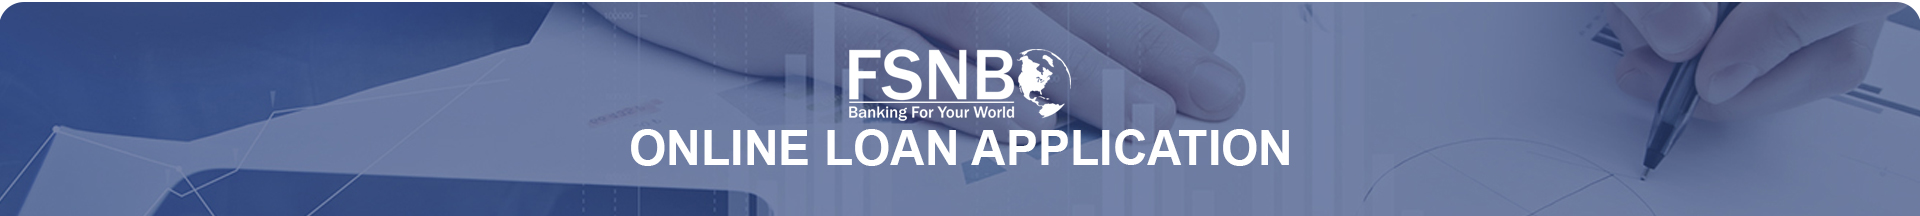 fsnb online loan application